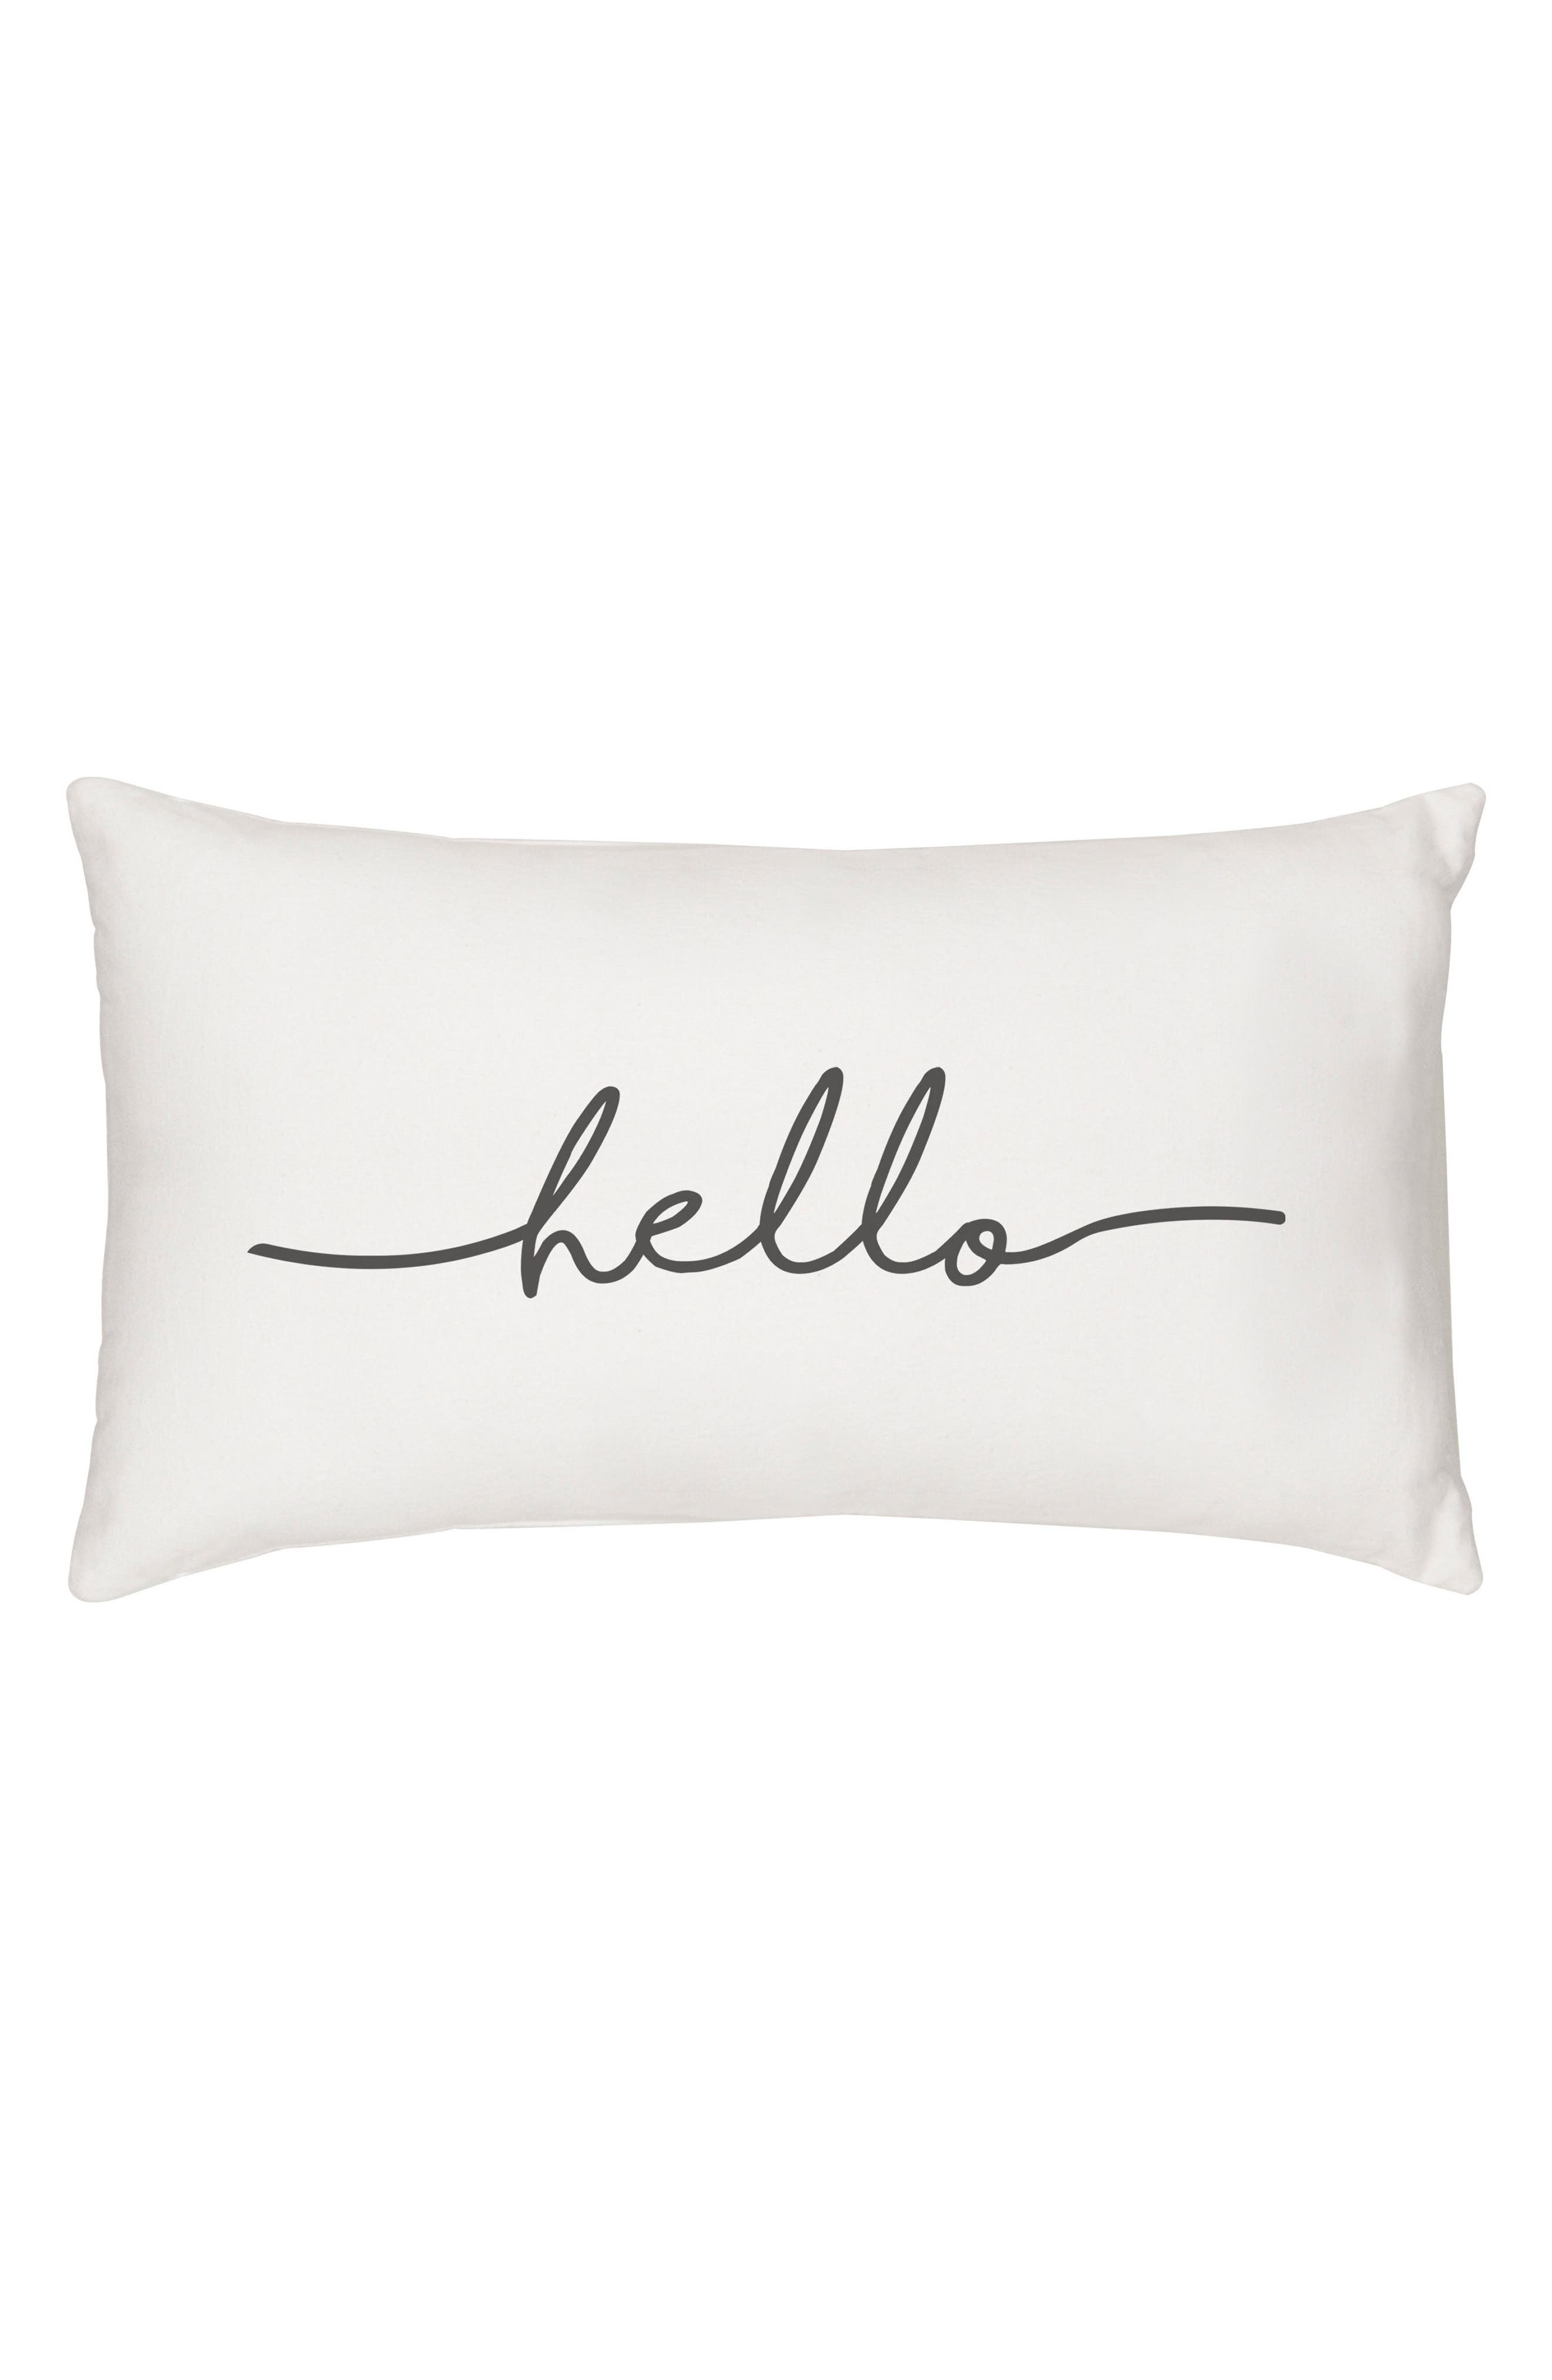 Hello Lumbar Accent Pillow,                             Main thumbnail 1, color,                             Grey